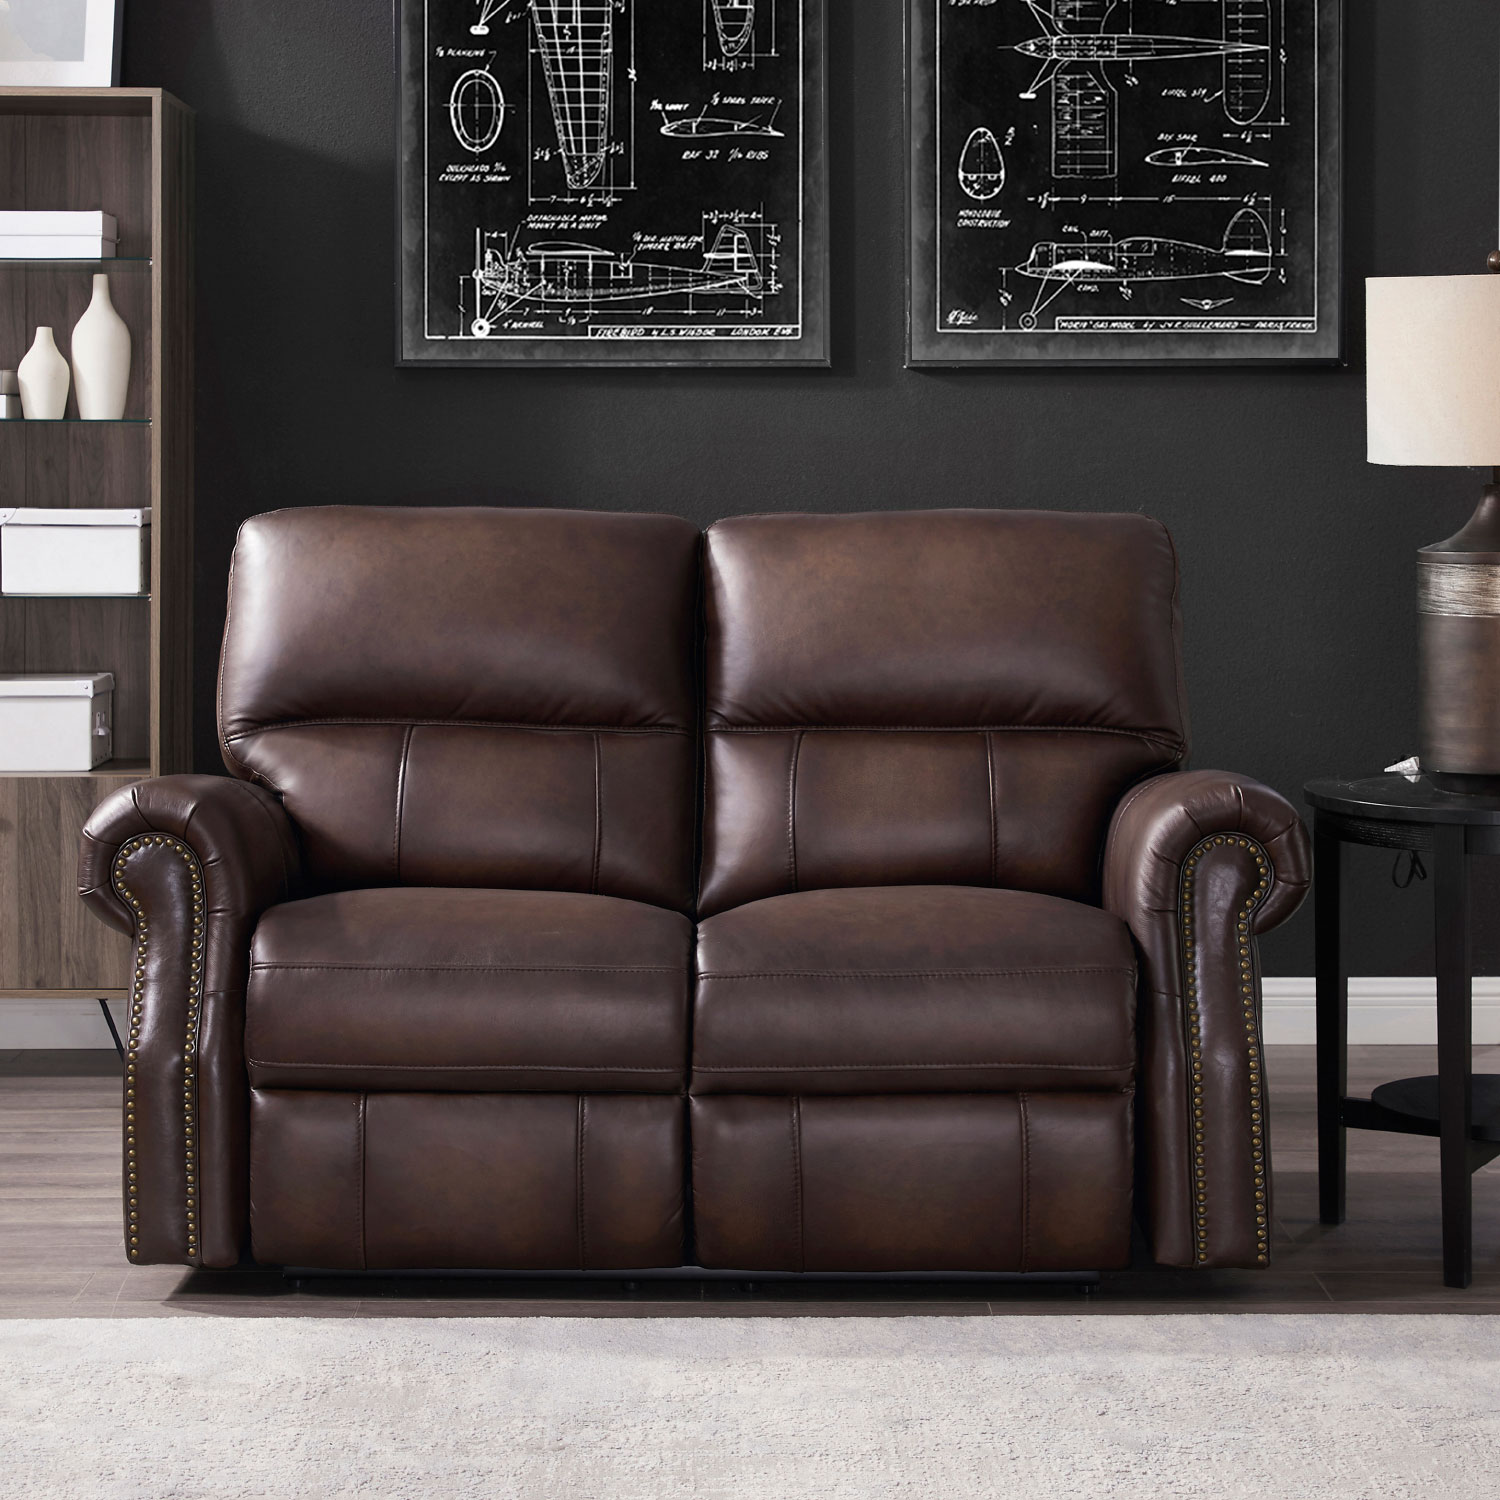 Marvelous Raymond Power Reclining Loveseat W Usb Port In Concord Walnut Leather By Hydeline Leather Ocoug Best Dining Table And Chair Ideas Images Ocougorg